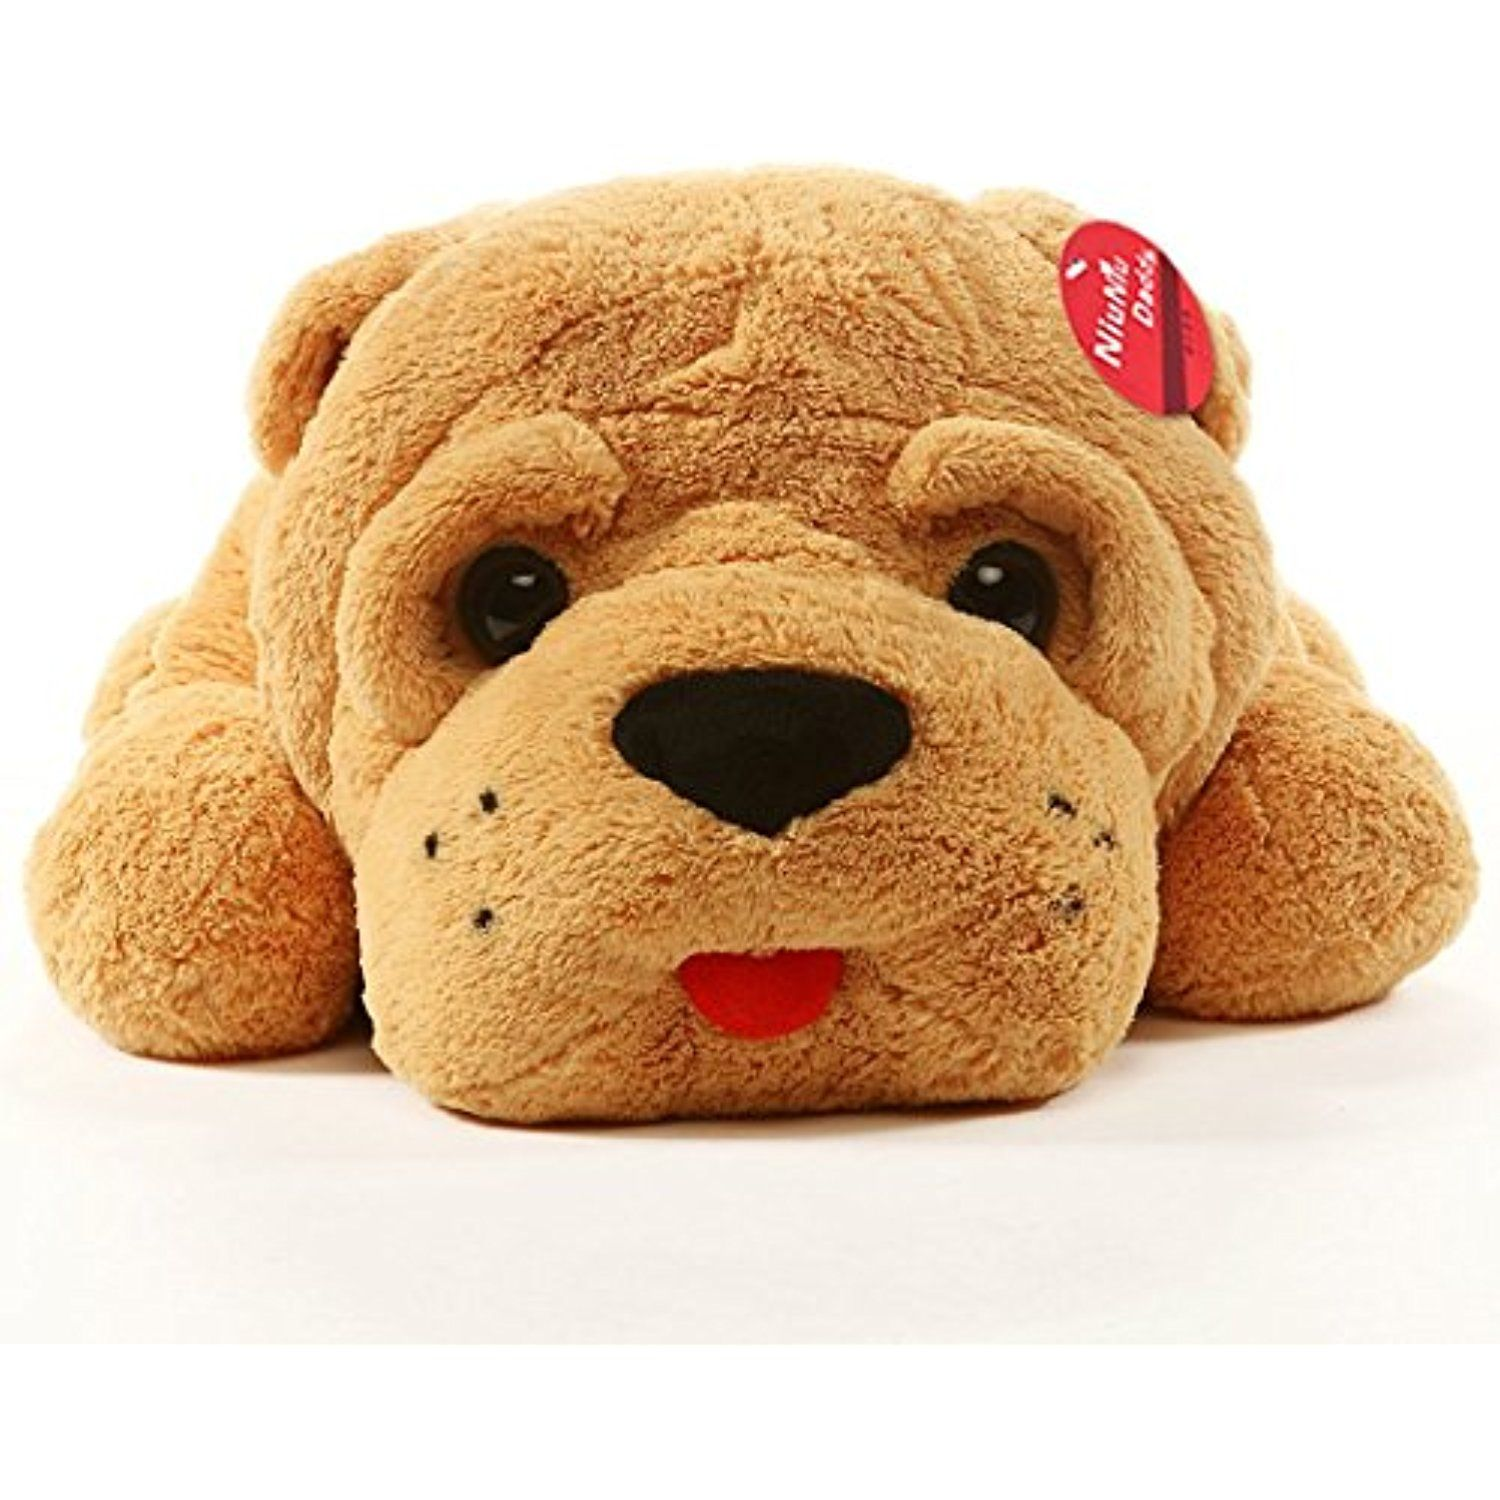 Niuniu Daddy 35 4 Plush Oscar Puppy Dog Pillow Soft Toy Large Stuffed Animal You Can Find Out More Details Soft Toy Dog Teddy Bear Stuffed Animal Plush Dog [ 1500 x 1500 Pixel ]